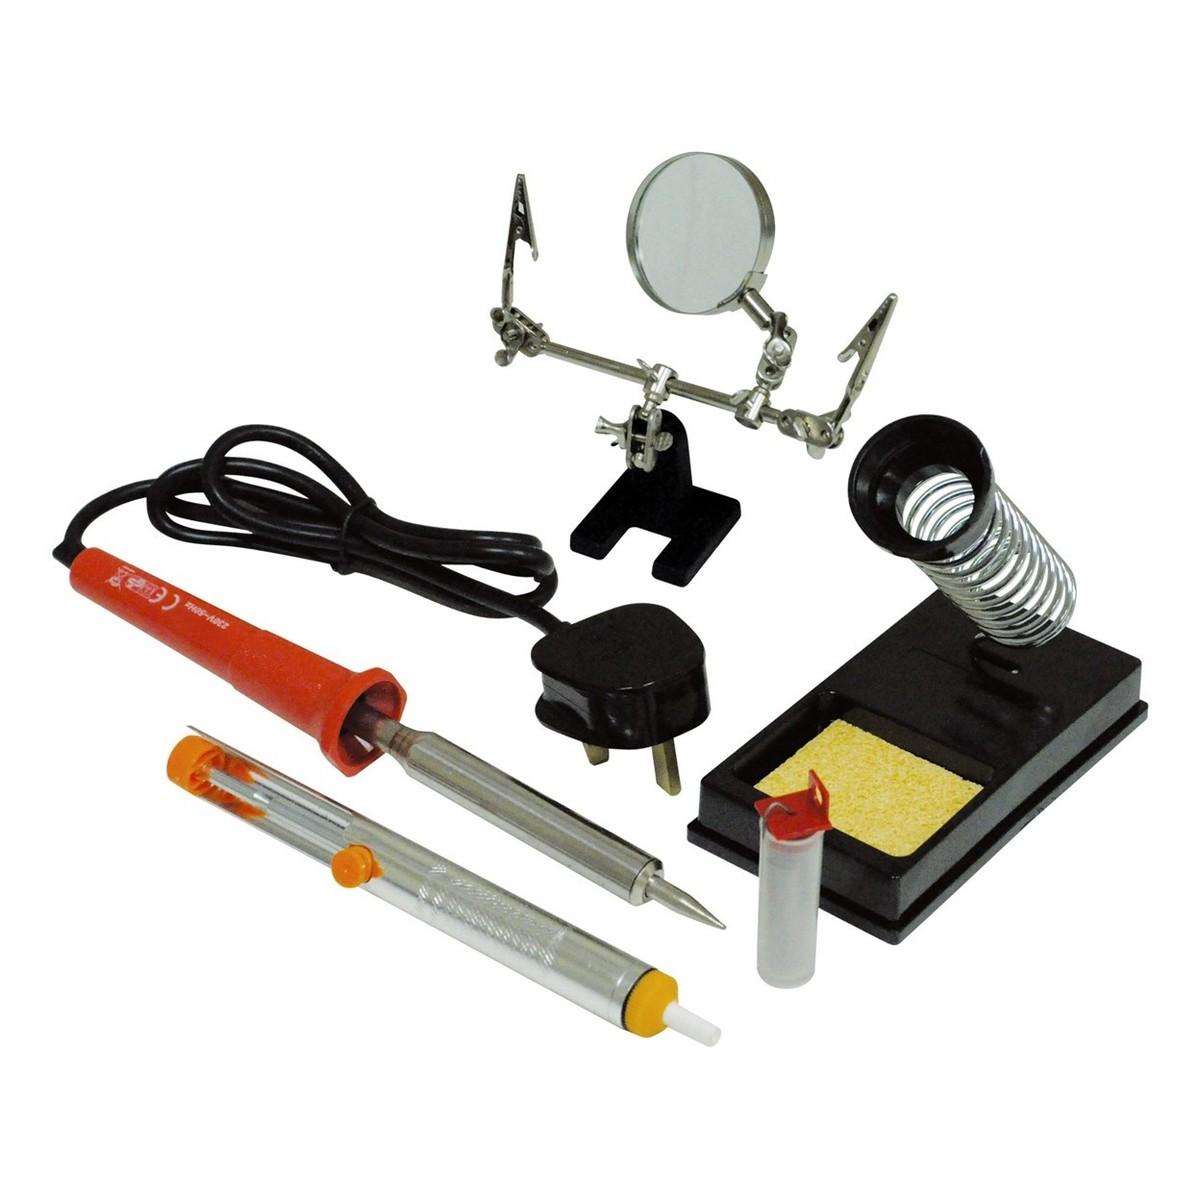 eagle 30w high quality mains powered soldering iron kit at. Black Bedroom Furniture Sets. Home Design Ideas